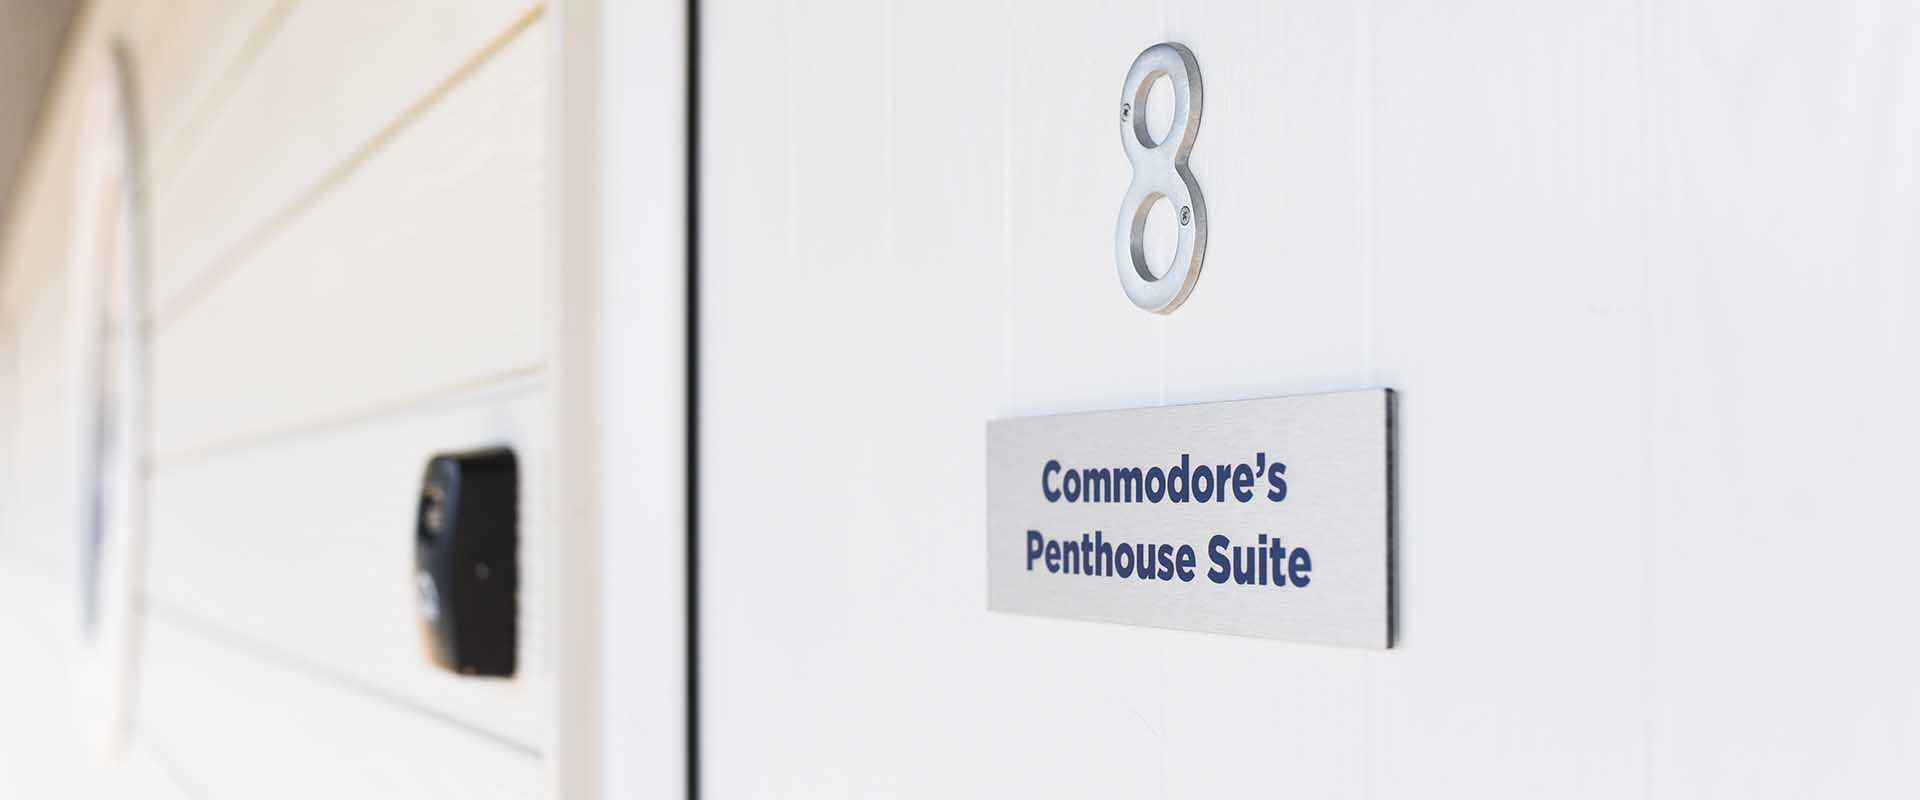 Commodore's Penthouse